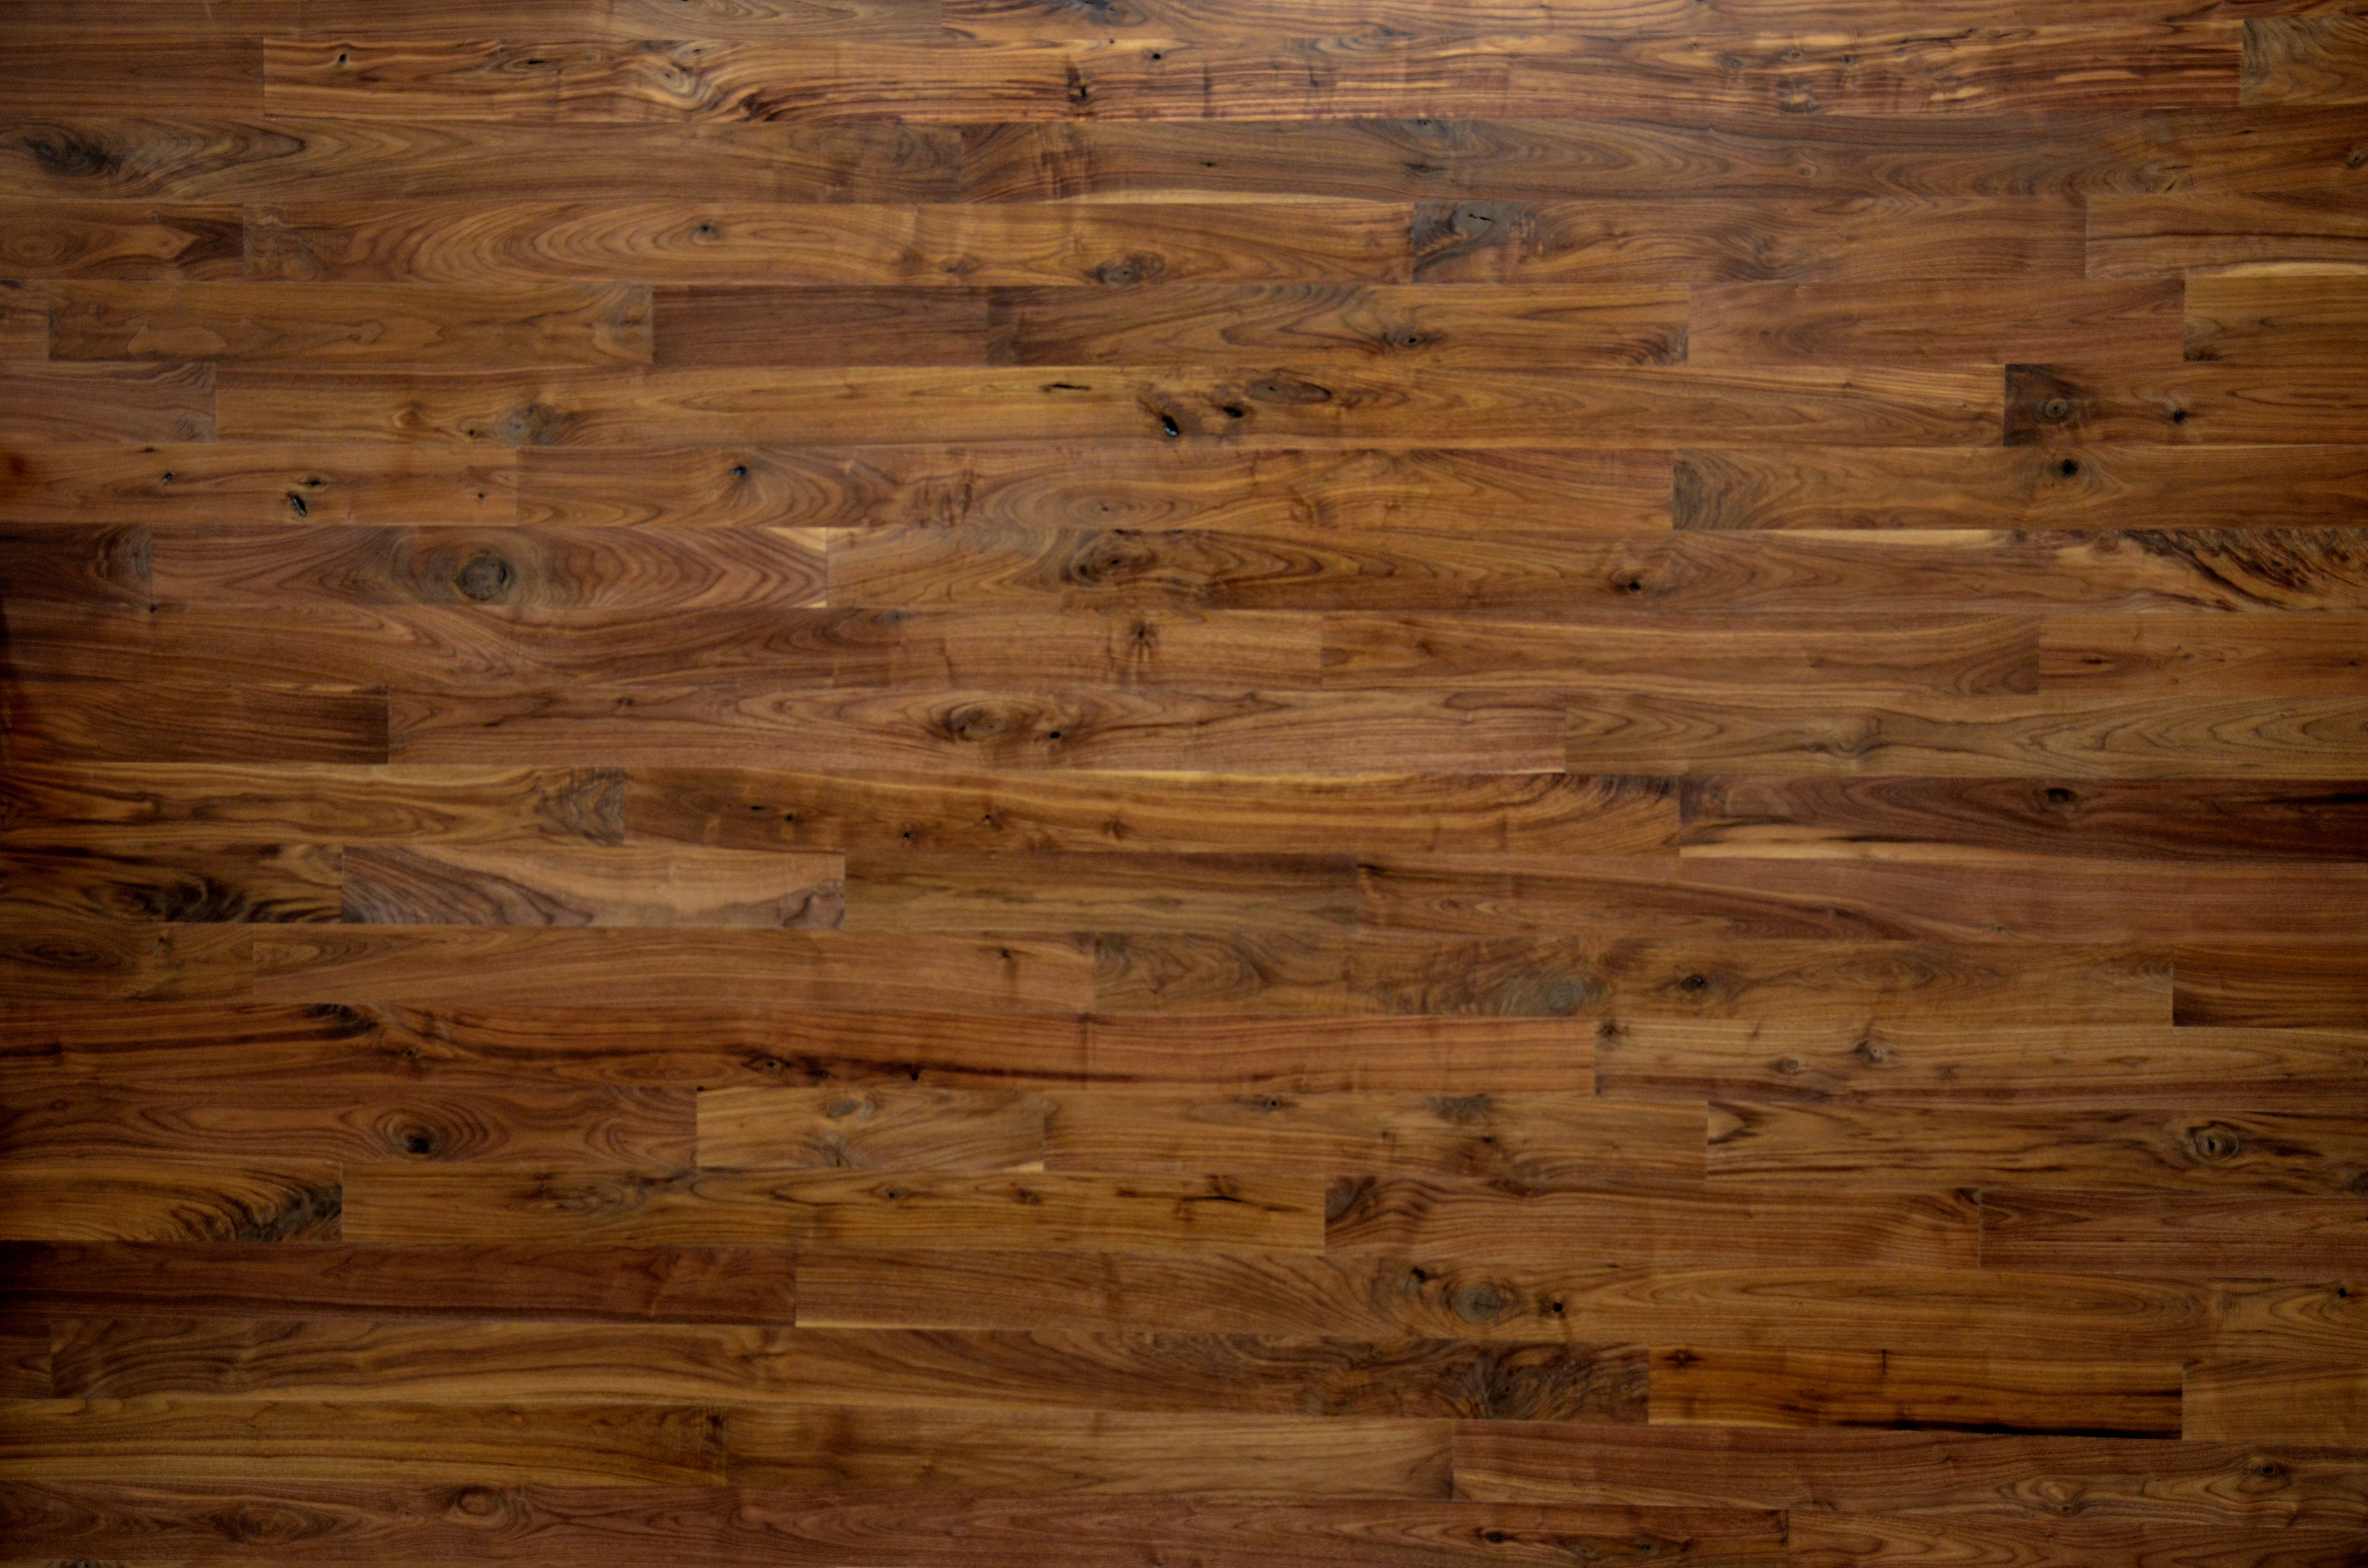 cheap hardwood flooring atlanta of lacrosse hardwood flooring walnut white oak red oak hickory pertaining to natual walnut